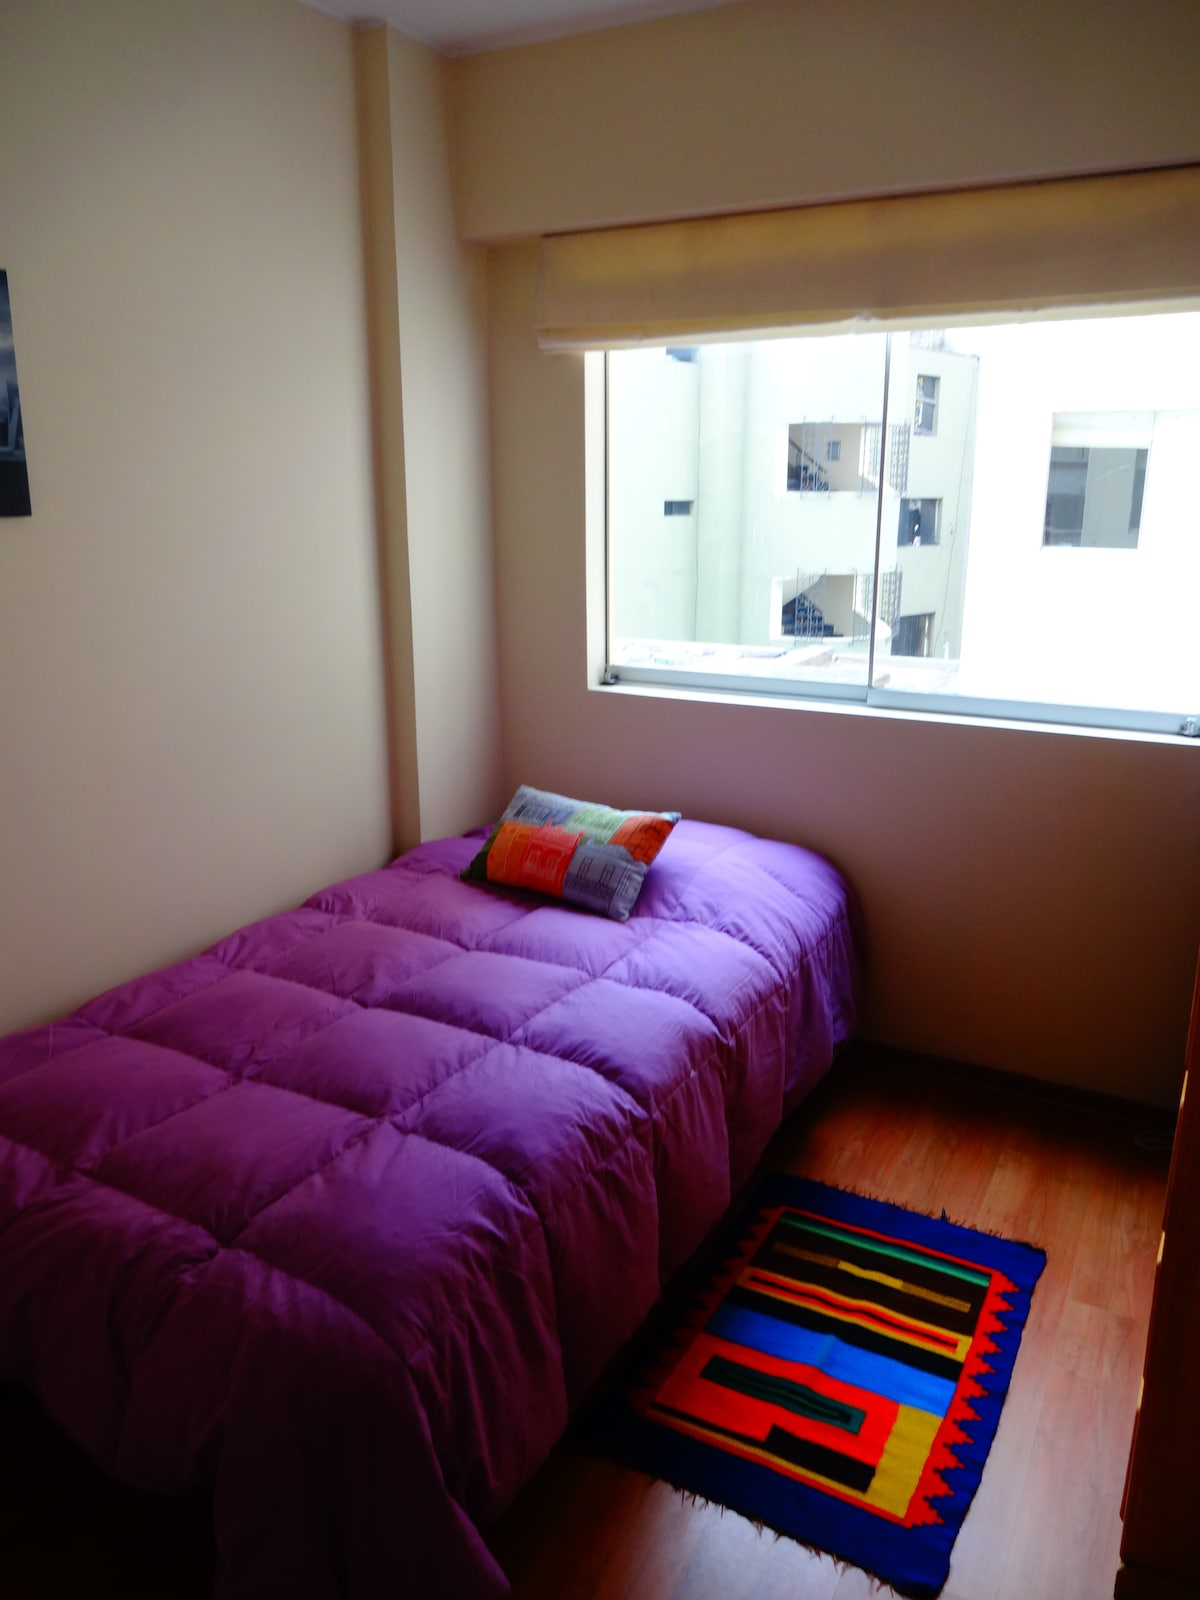 Budget single room in Miraflores